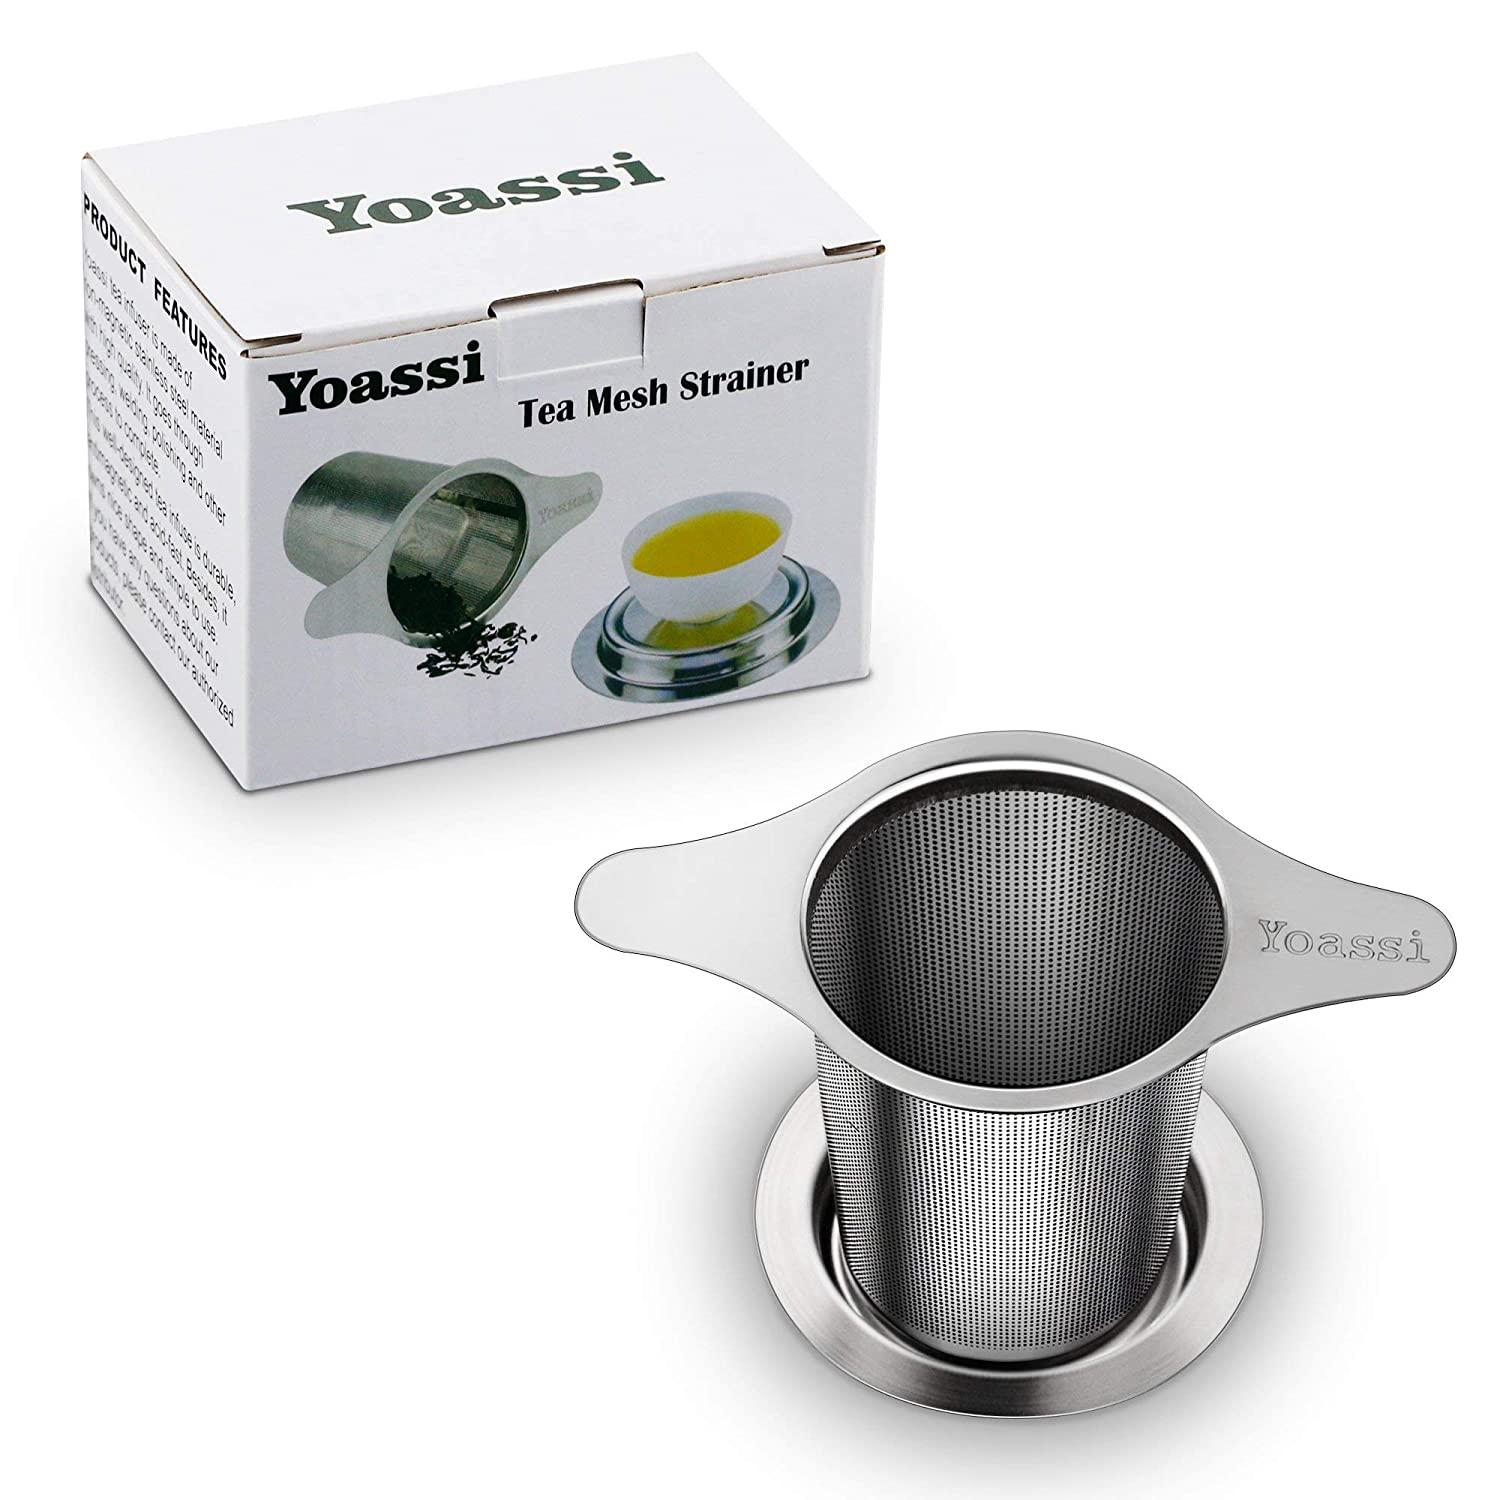 Yoassi 2 Pack FDA Approved 18//8 Stainless Steel Tea Infuser Mesh Strainer with Large Capacity /& Perfect Size Double Handles for Hanging on Teapots Mugs,Cups to steep Loose Leaf Tea and Coffee IPOW